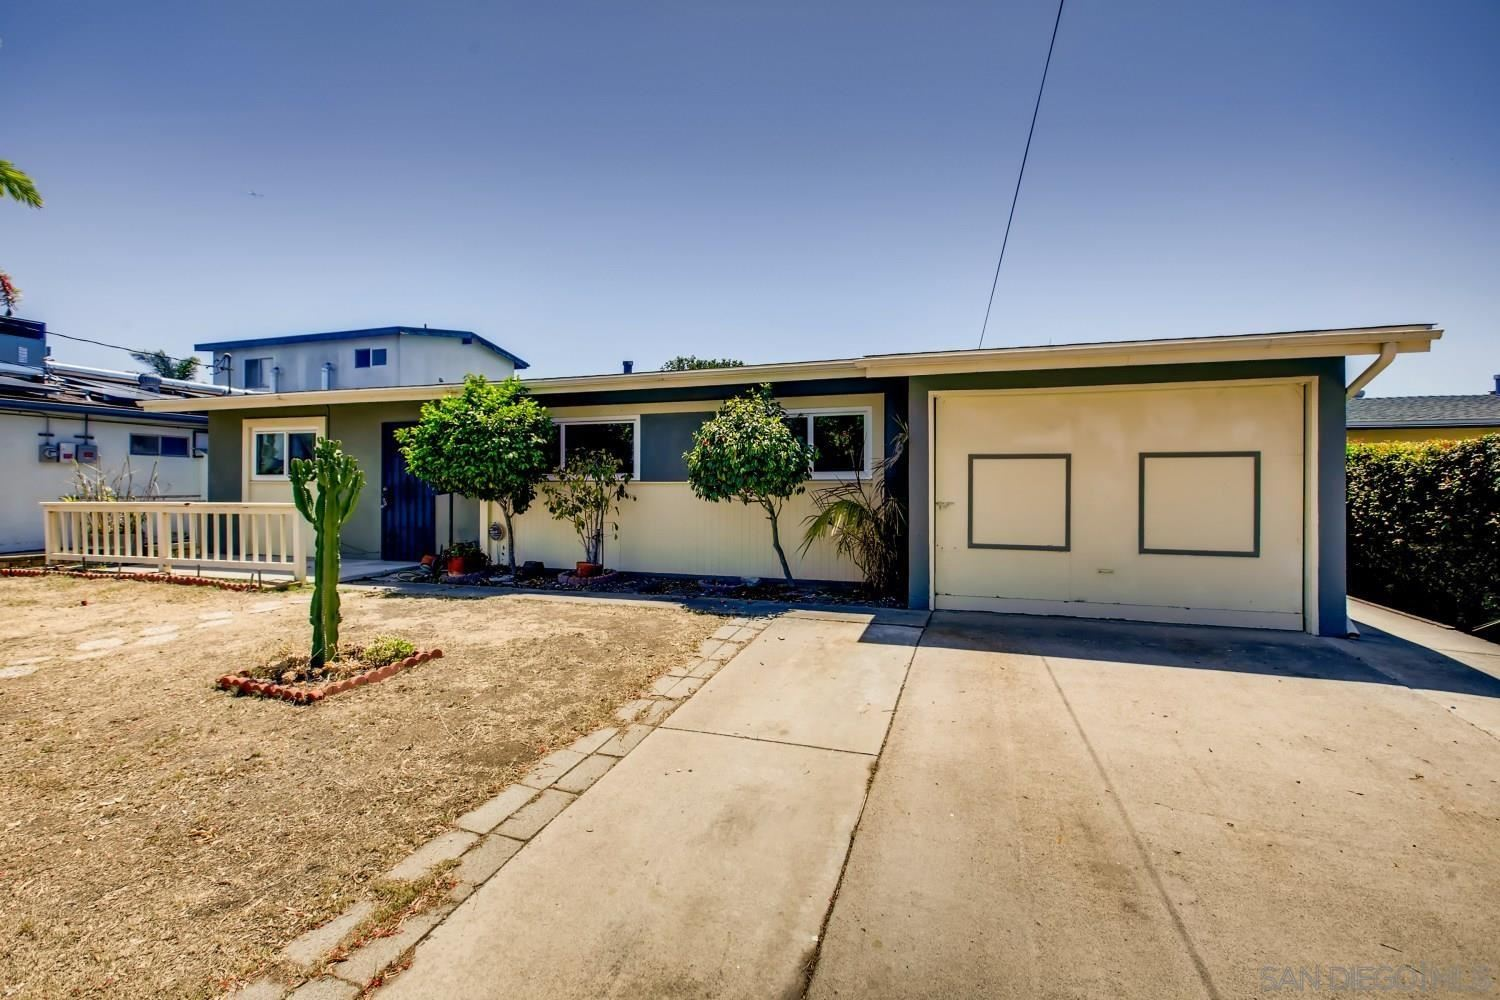 Photo for 5105 Bellvale Avenue, San Diego, CA 92117 (MLS # 210011827)